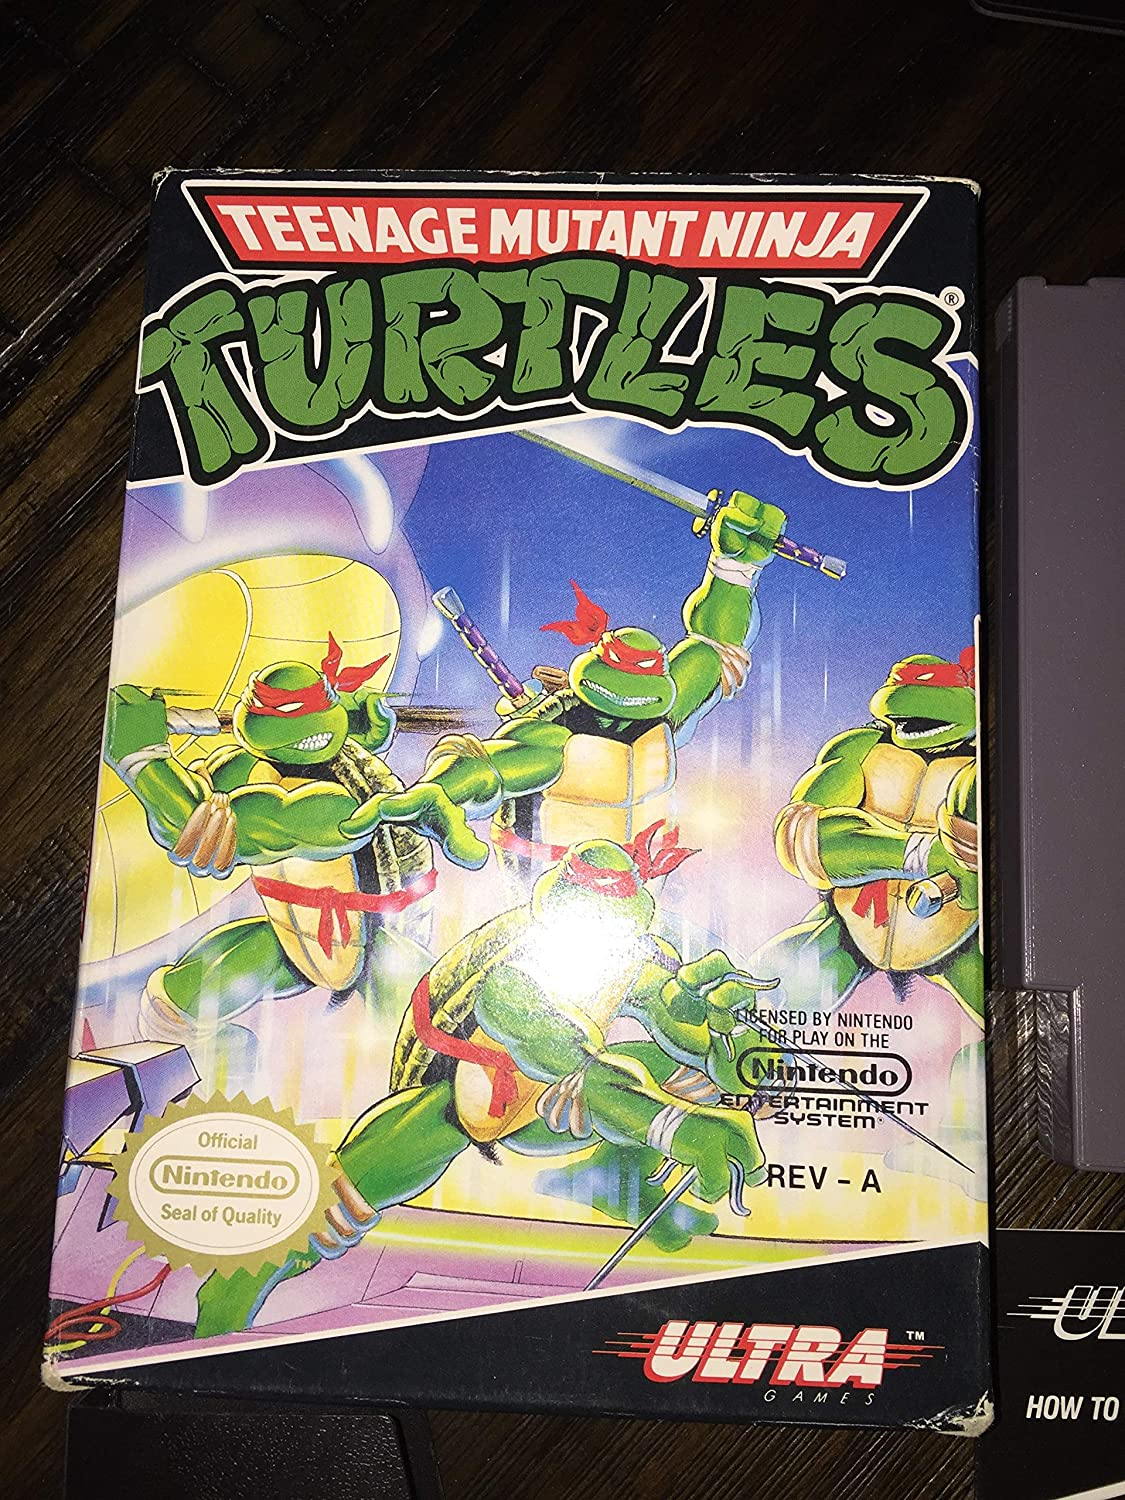 Amazon.com: Teenage Mutant Ninja Turtles: Video Games